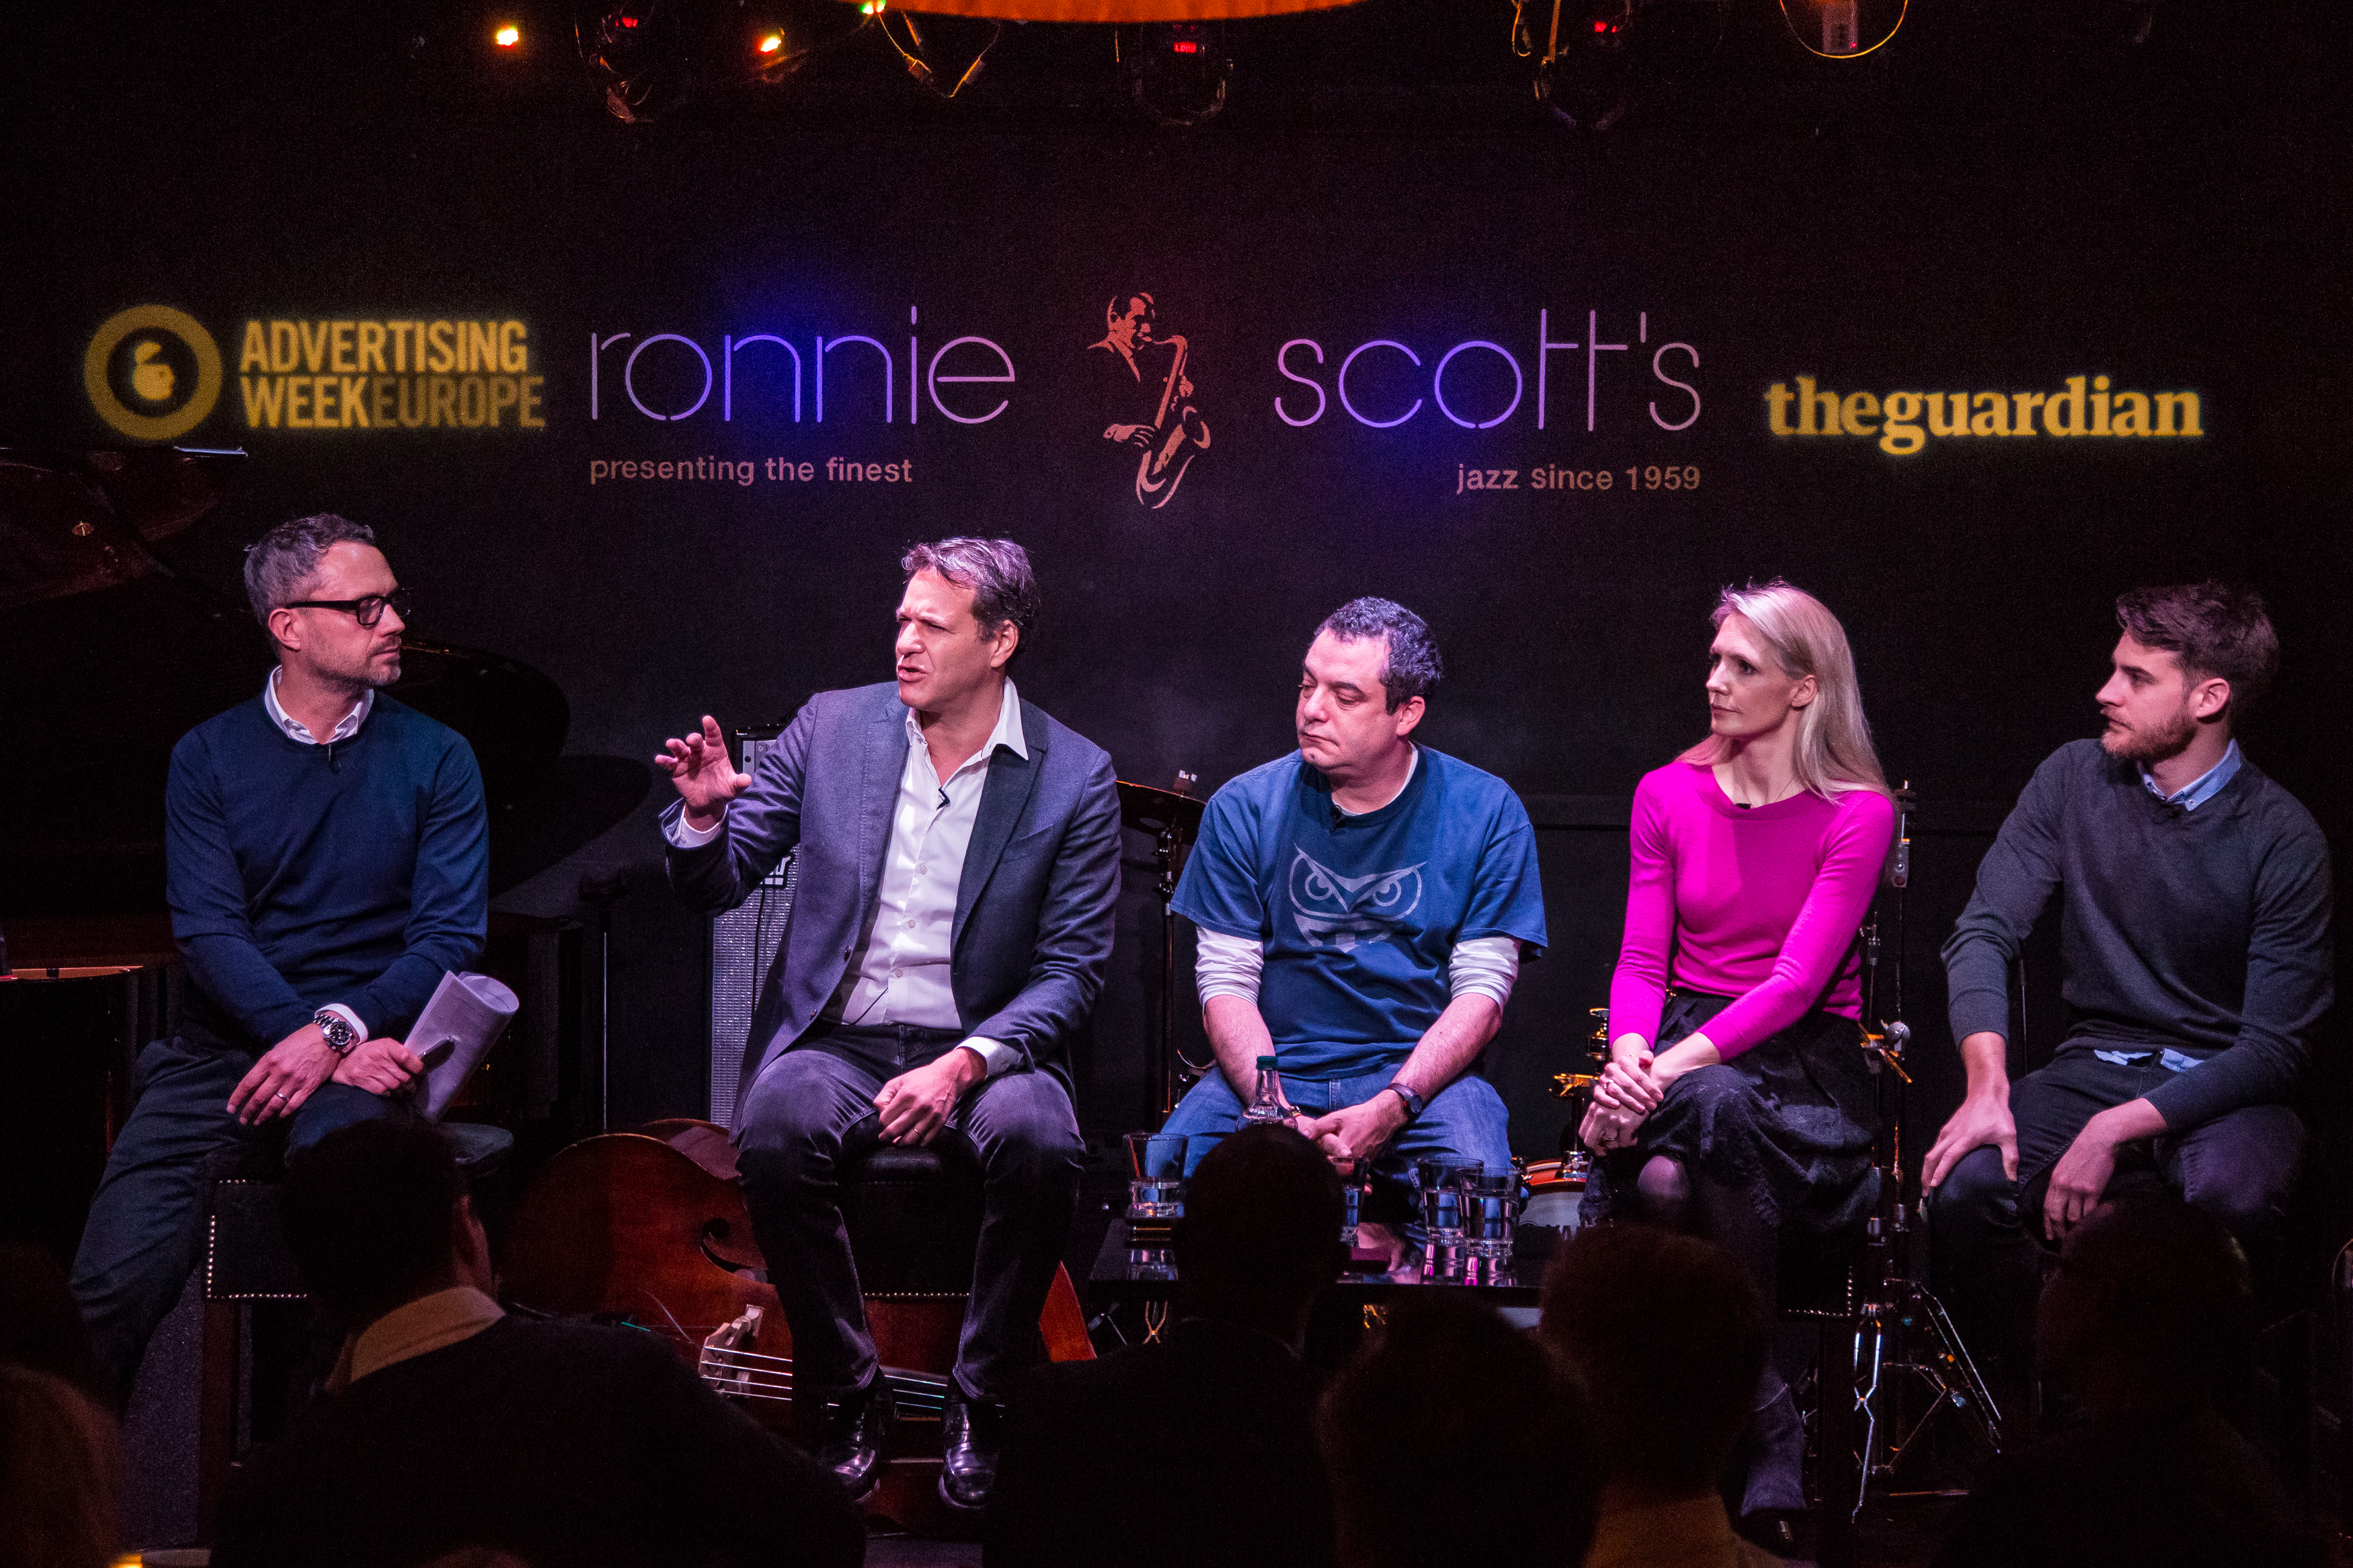 The Guardian Leadership Breakfast: Learning from Disruption, Advertising Week Europe 2017, Ronnie Scott's Jazz Club, London, UK